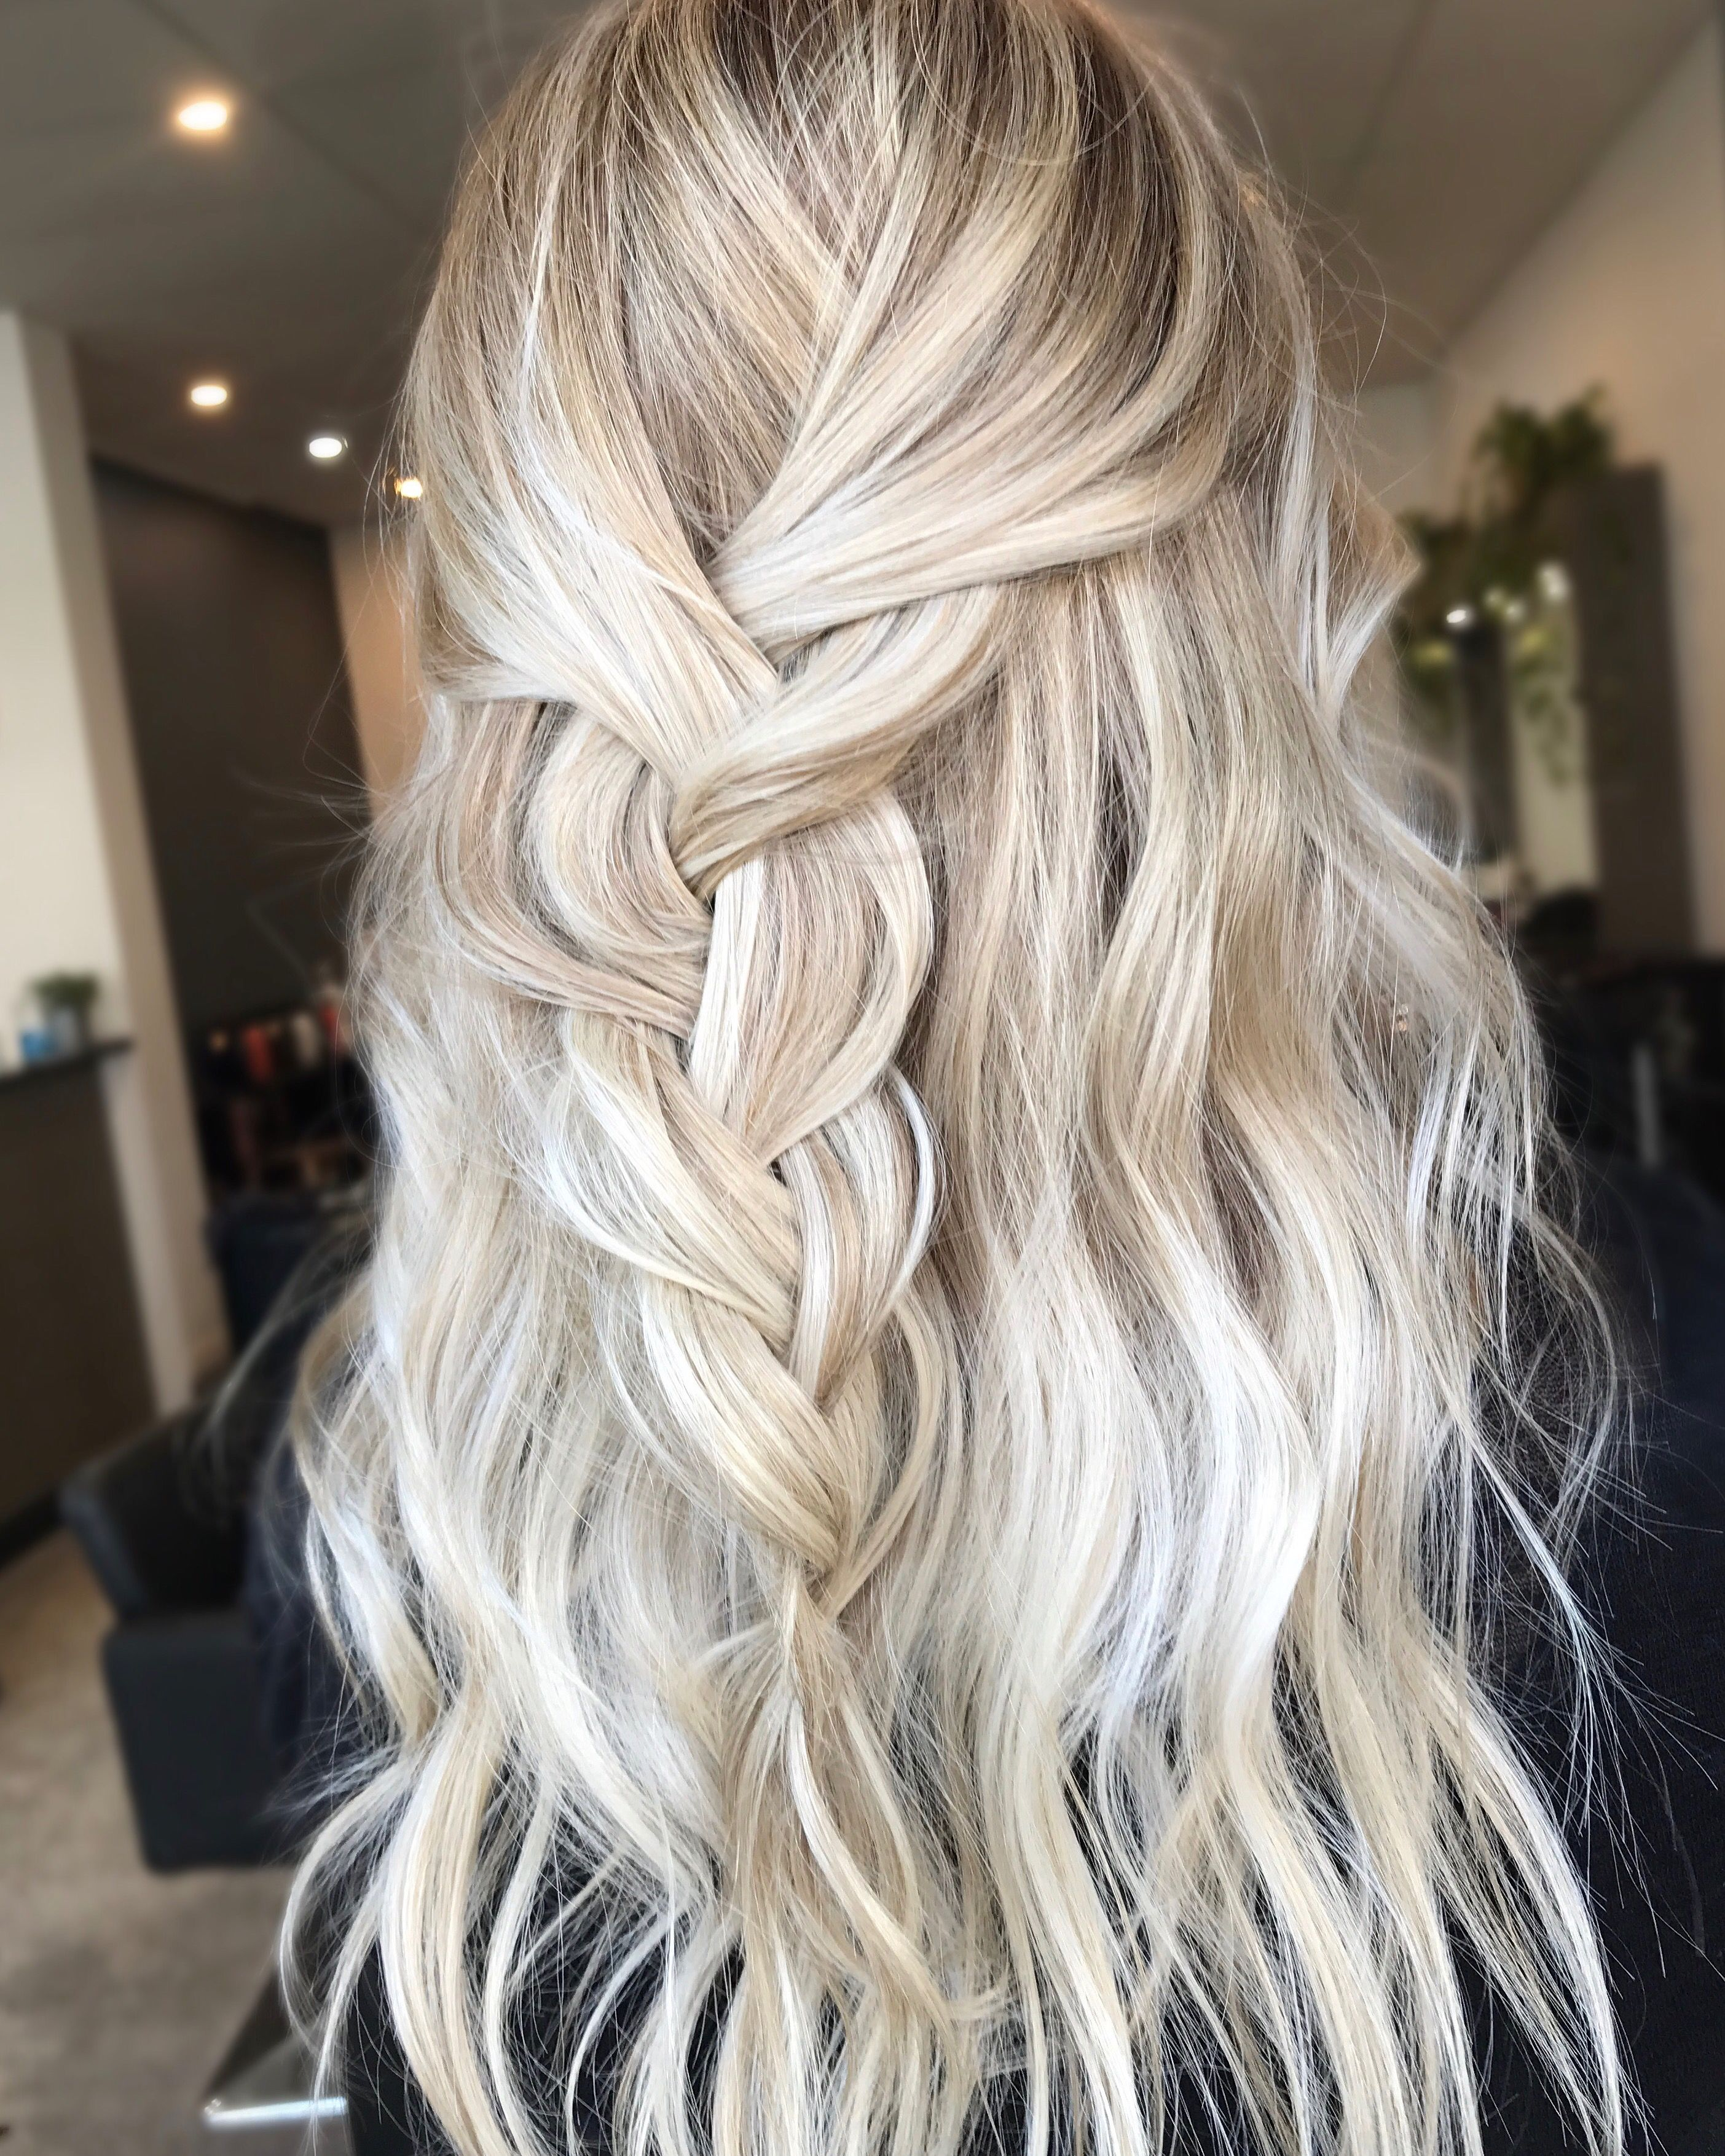 Pin by Hairbykaitlinjade HairandHarlow on Hairbykaitlinjade